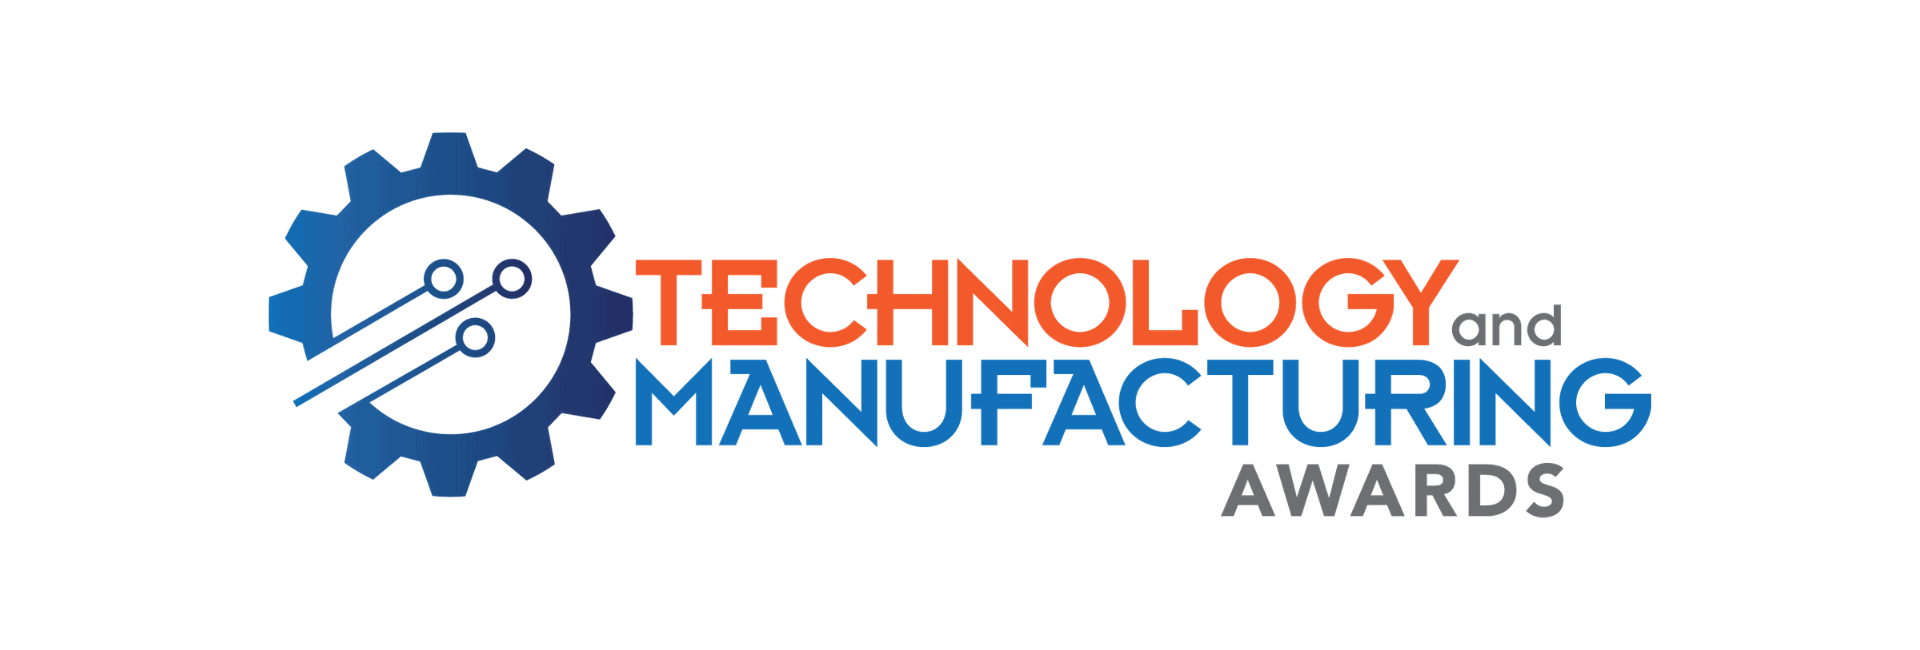 OLEDWorks Wins Manufacturing Innovation Award for Second Year in a Row